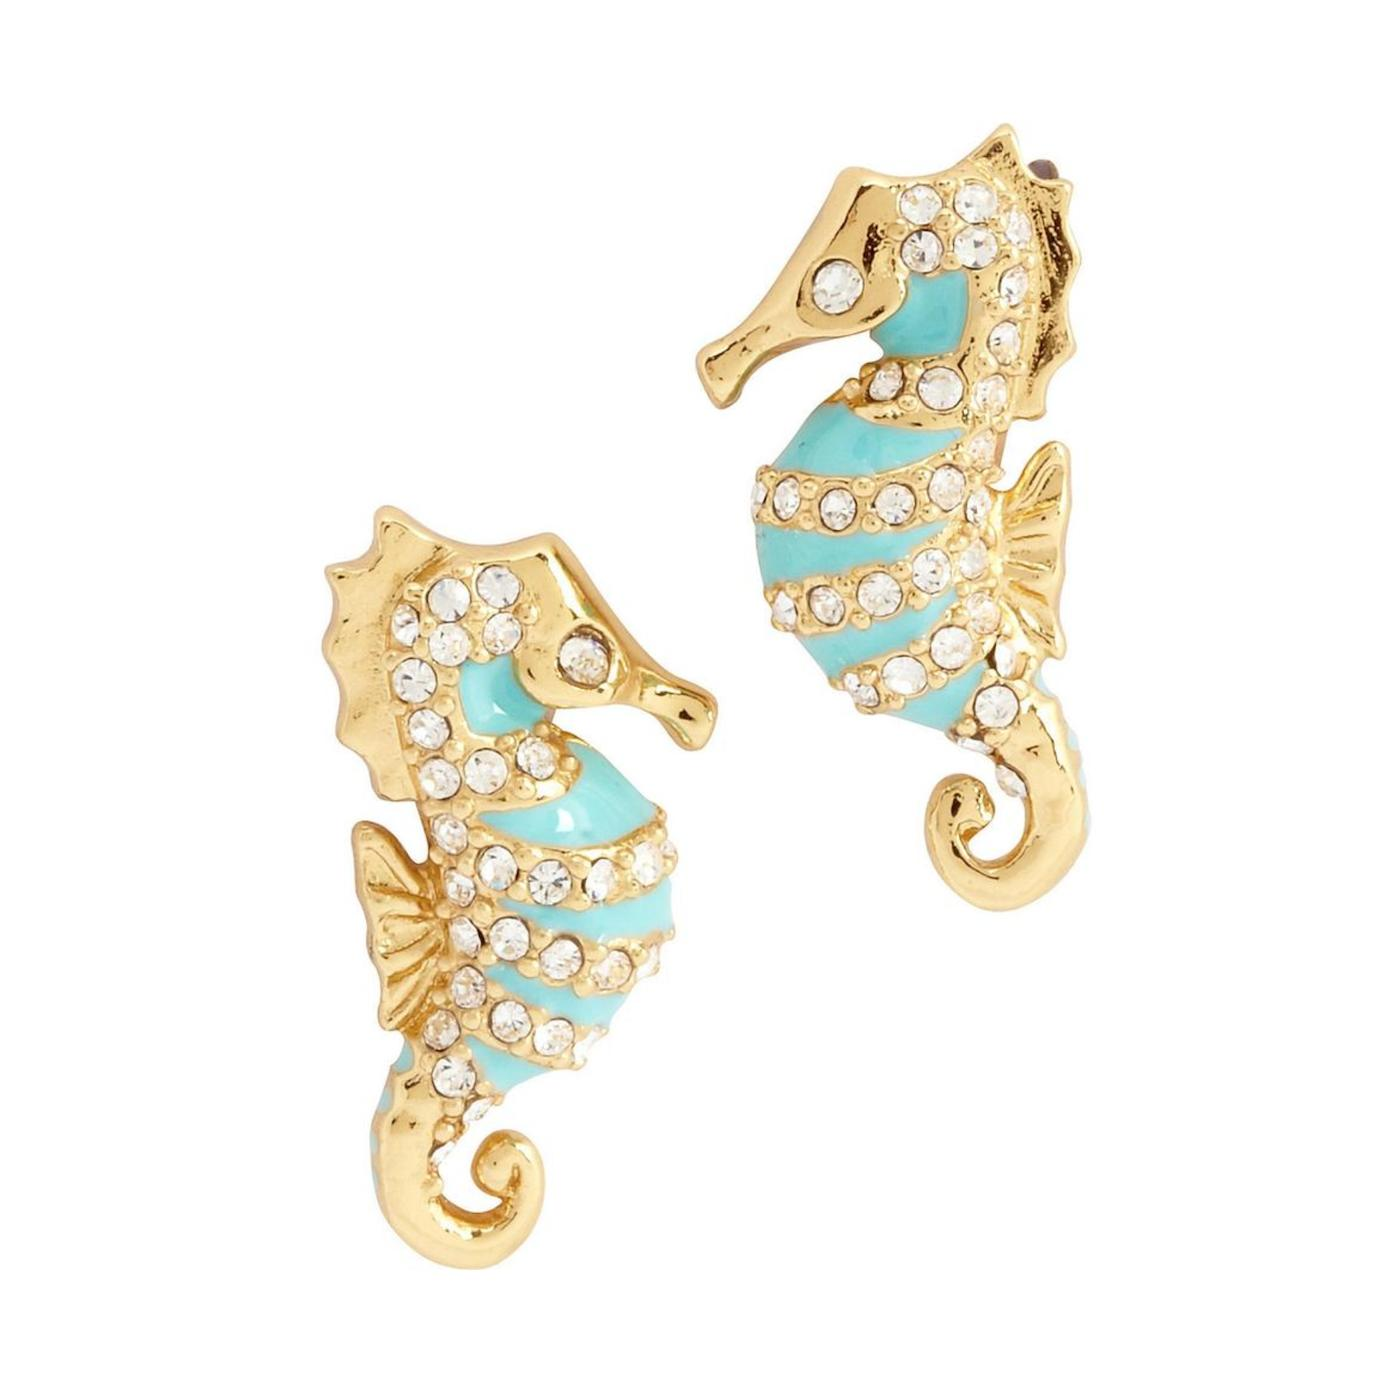 new york paradise found seahorse stud earrings